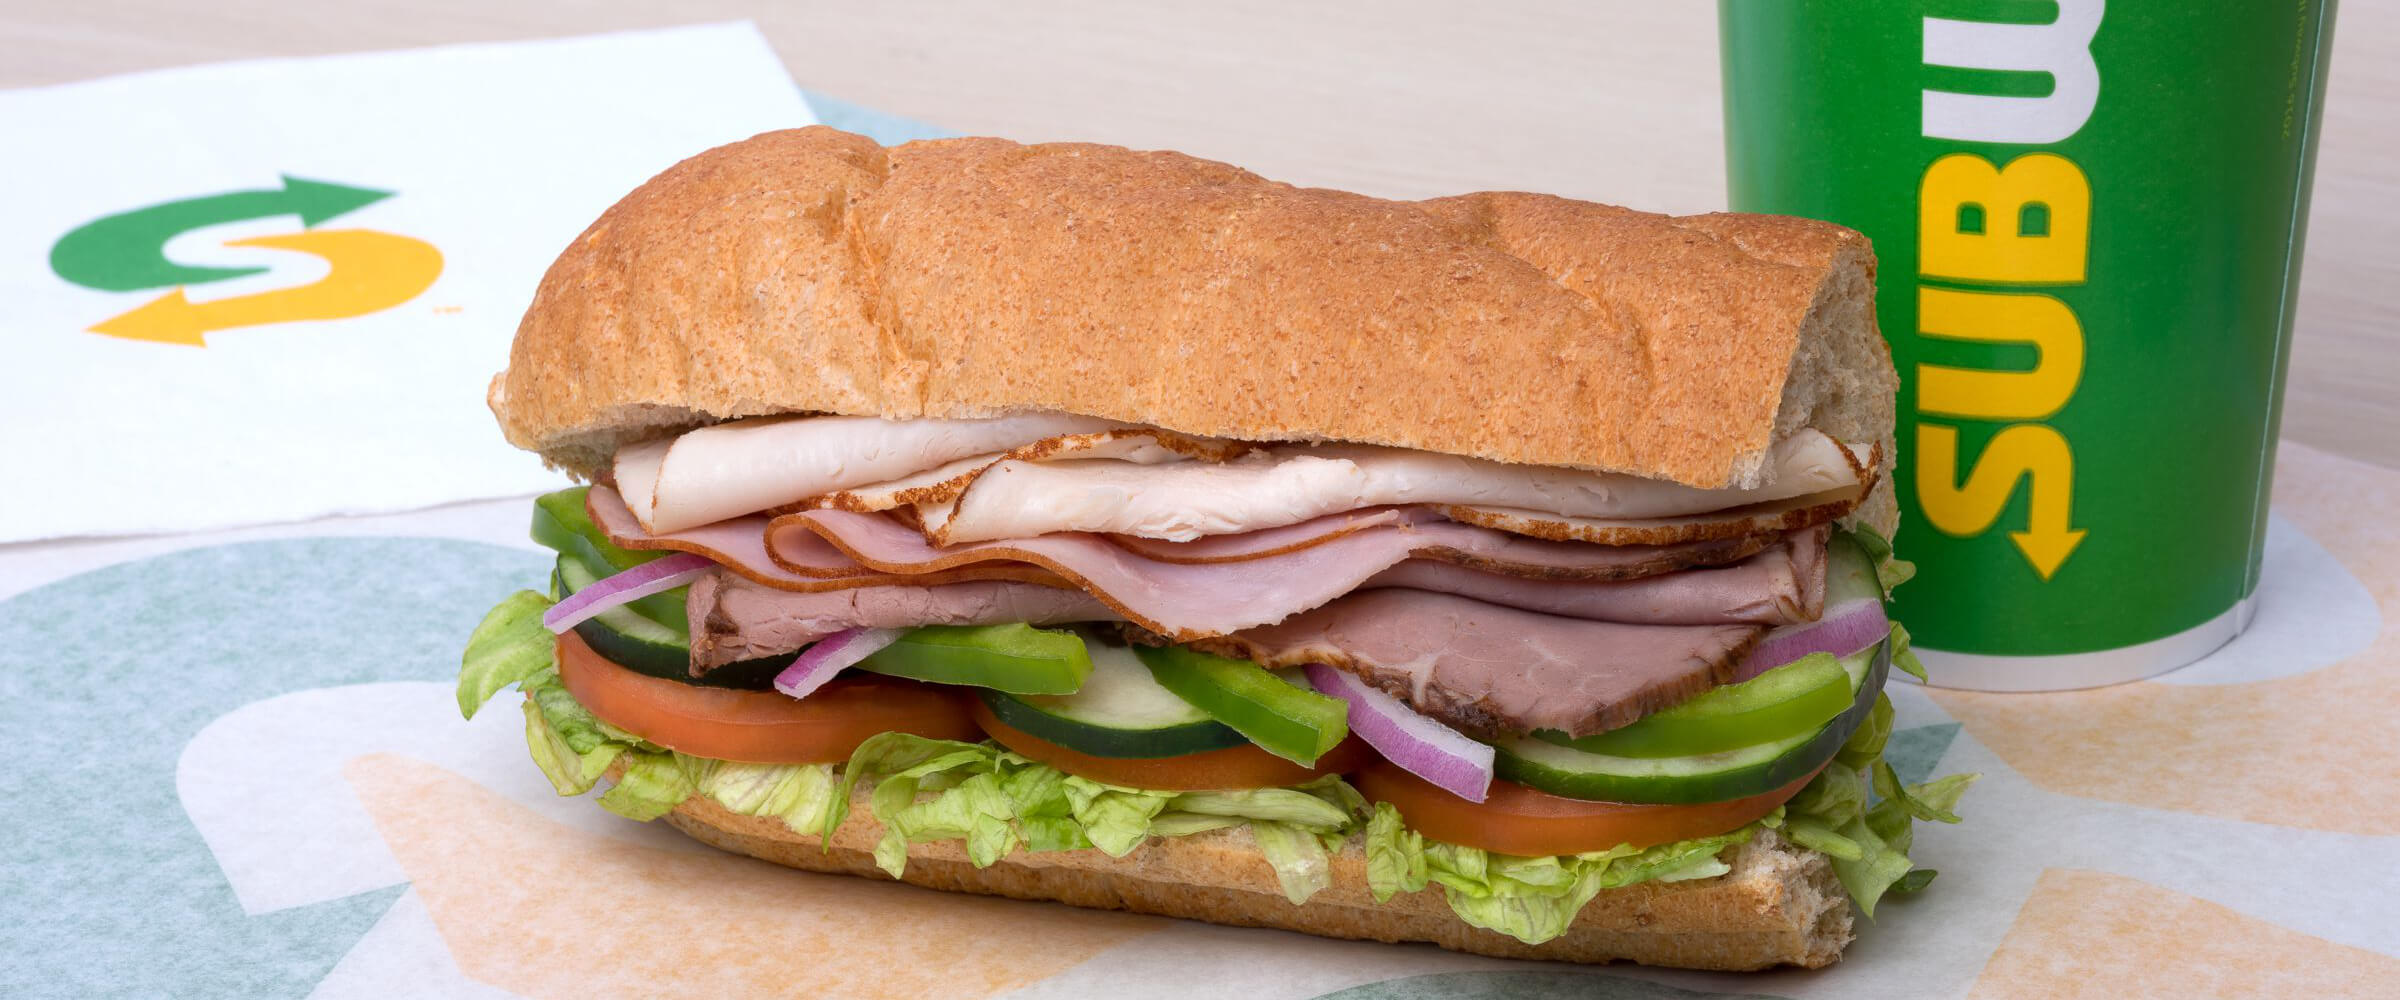 Subway Subs at Pearson Airport - Terminal 3 - After Security   Pearson Airport